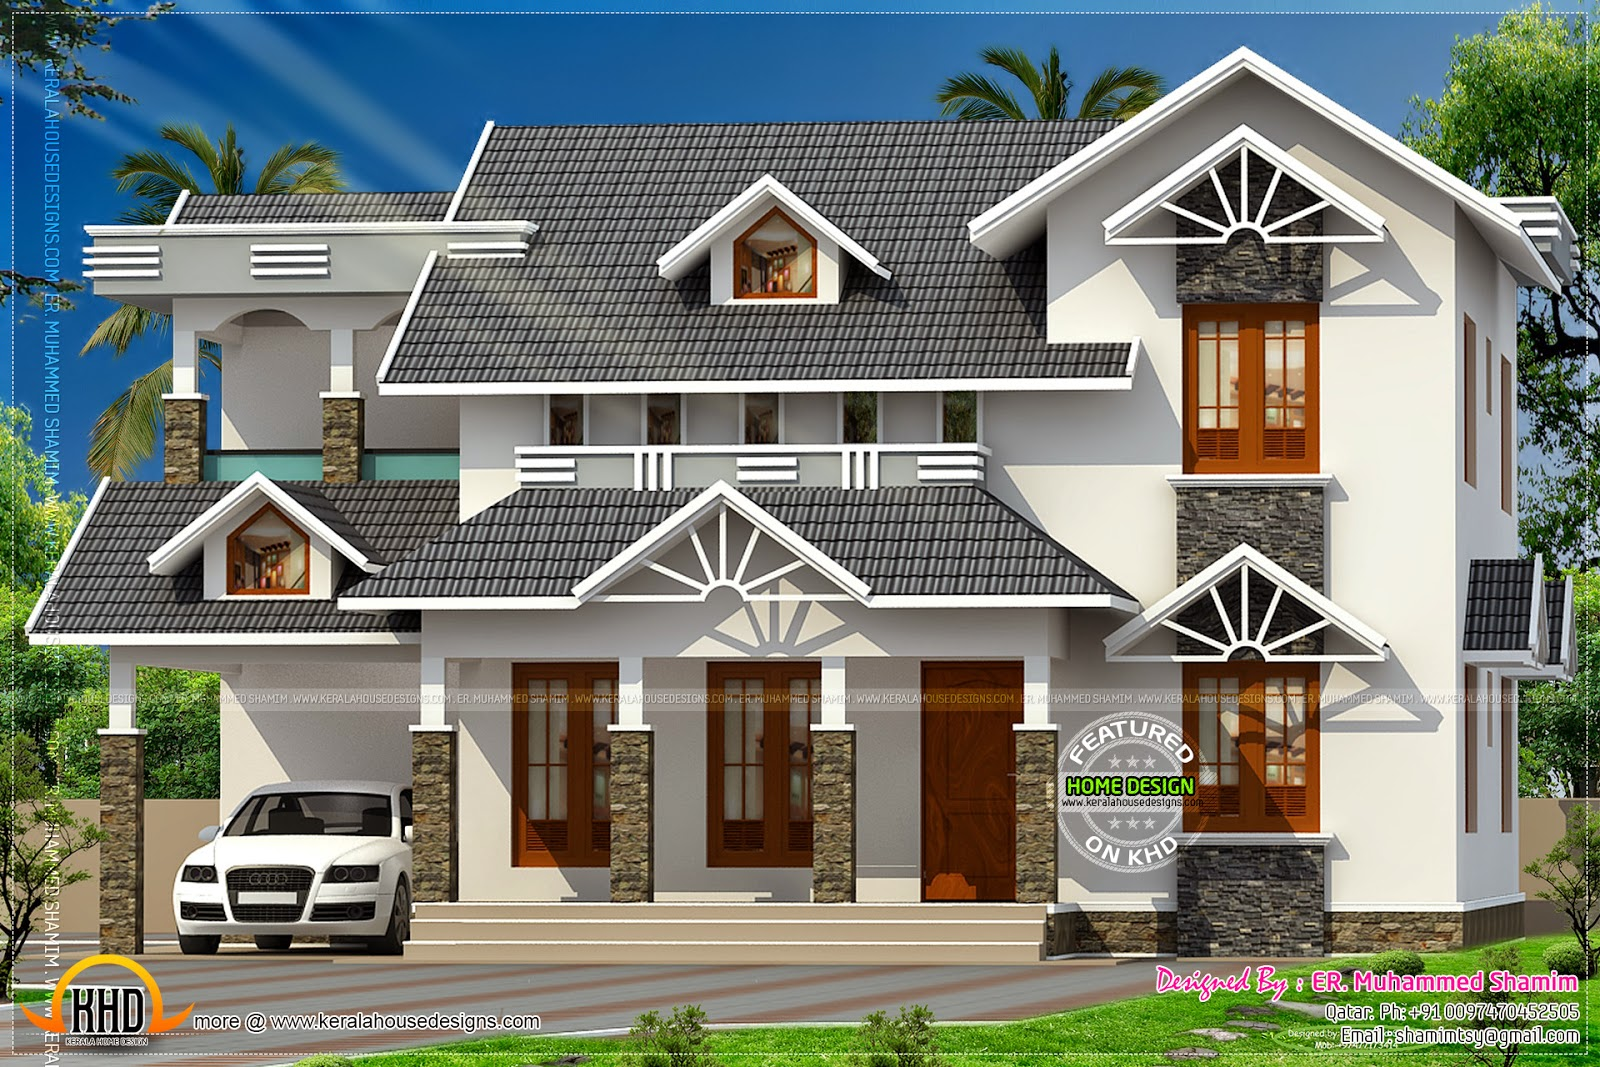 Nice sloped roof kerala home design kerala home design and floor plans - Nice home designs ...